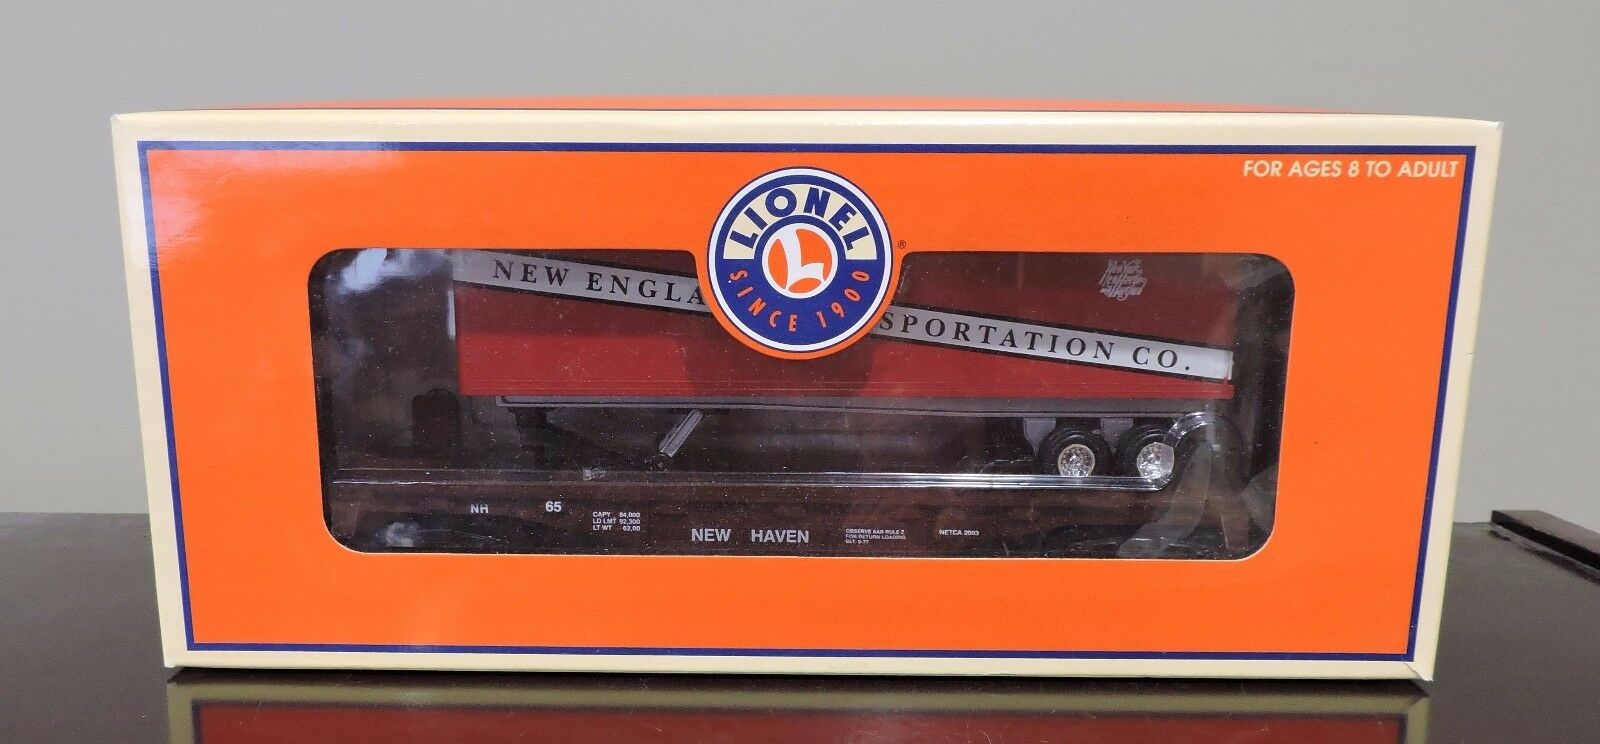 LIONEL TRAIN  6-52306 NEW ENGLAND TRANSPORTATION CO. TOFC FOR THE NETCA